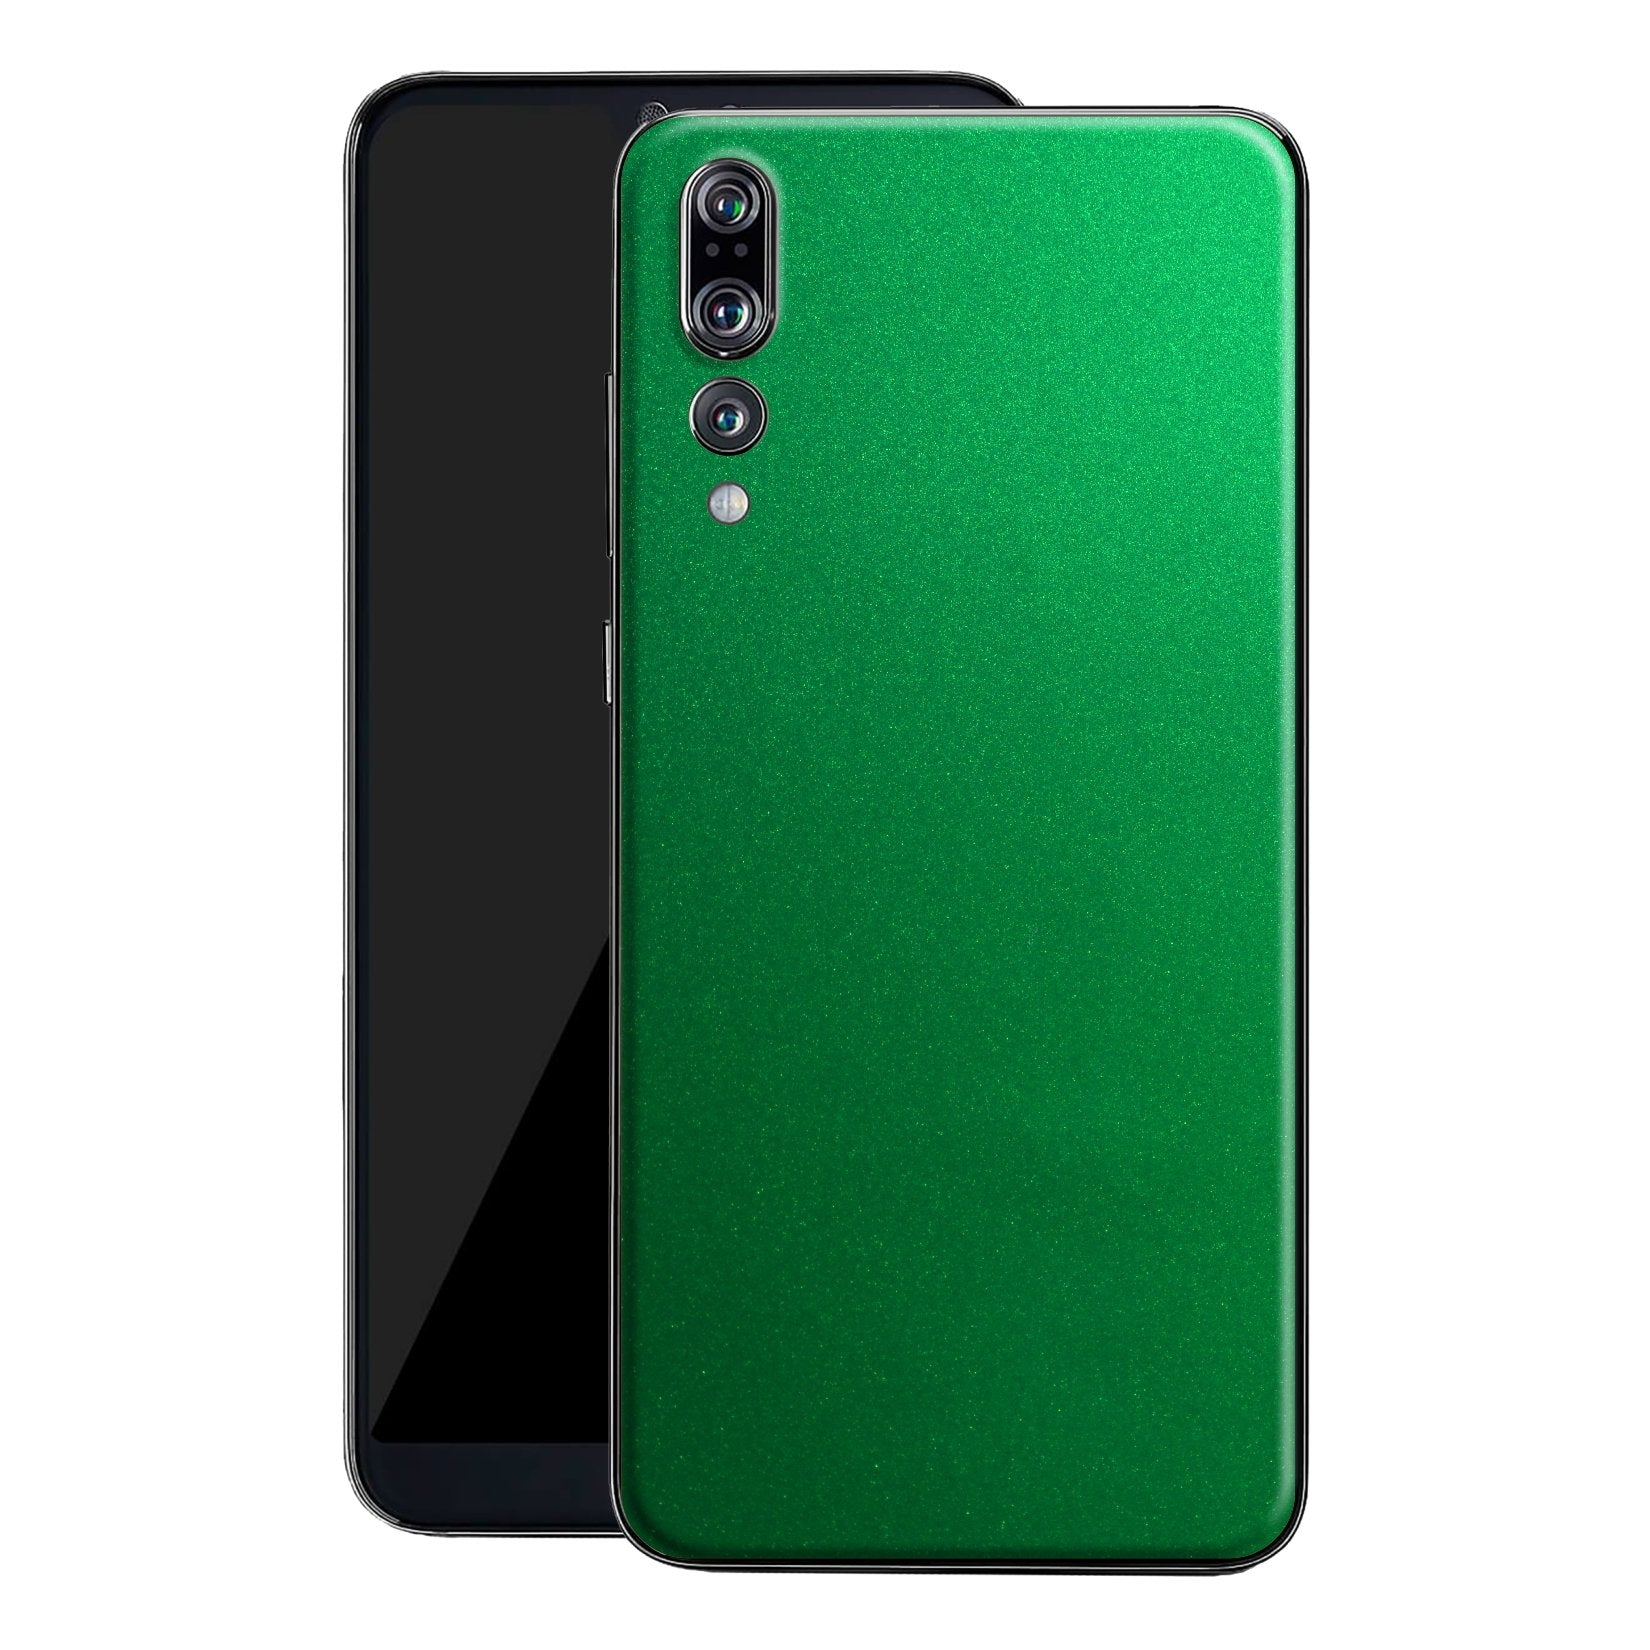 Huawei P20 PRO Viper Green Tuning Glossy Gloss Finish Skin, Decal, Wrap, Protector, Cover by EasySkinz | EasySkinz.com